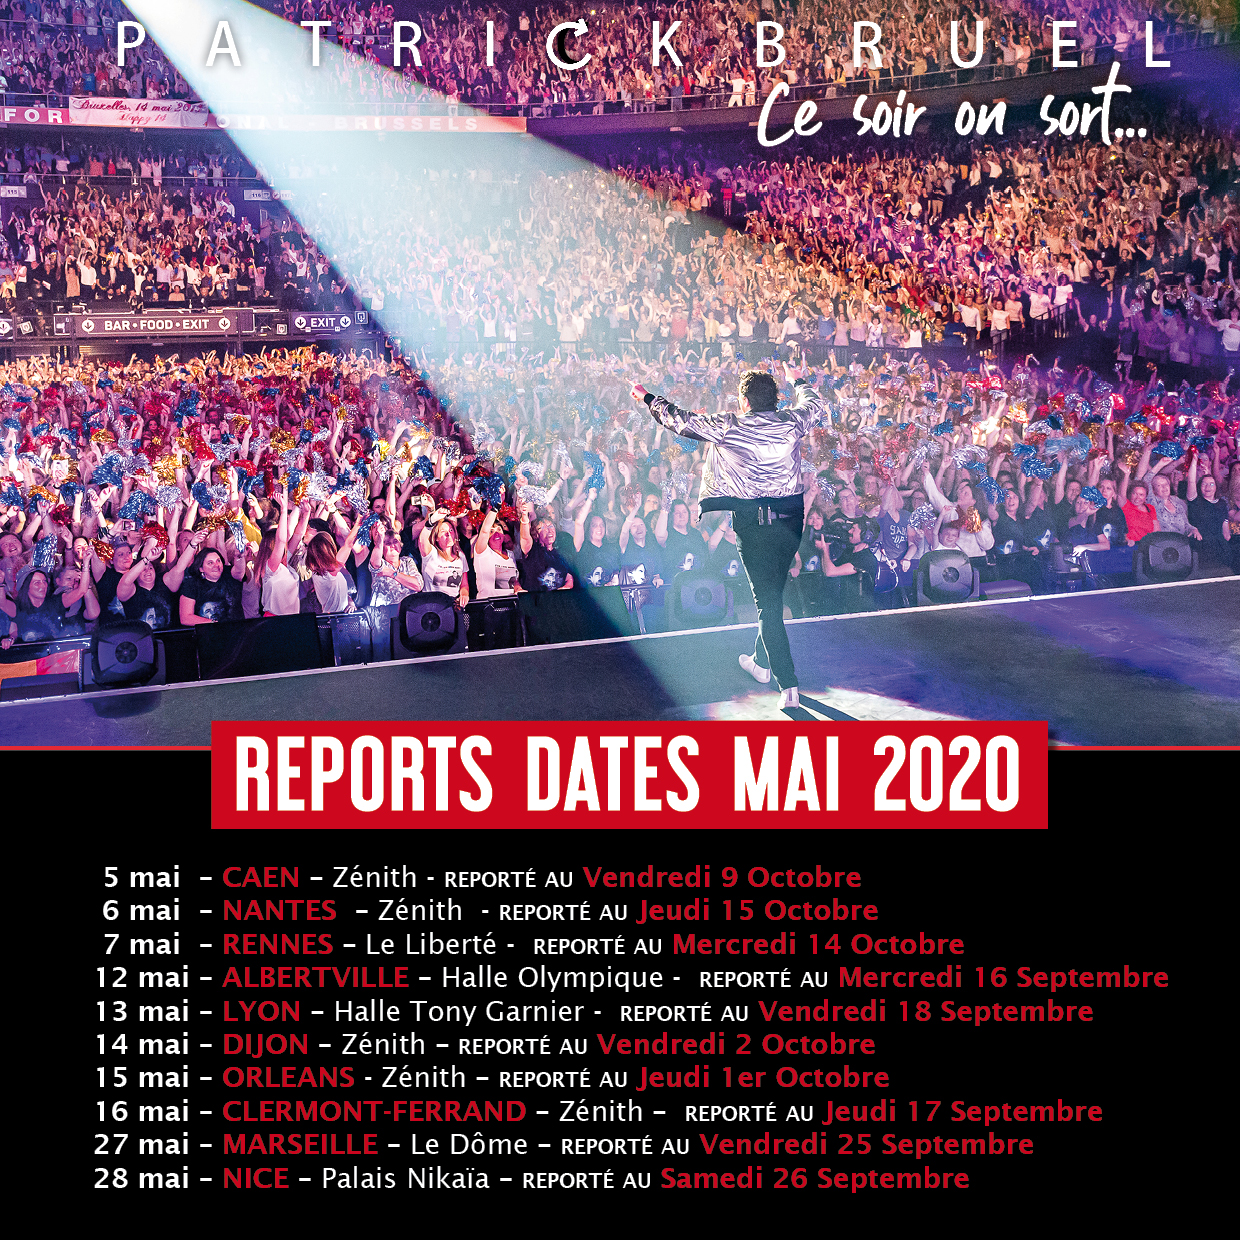 REPORT DATES DE TOURNÉE MAI 2020